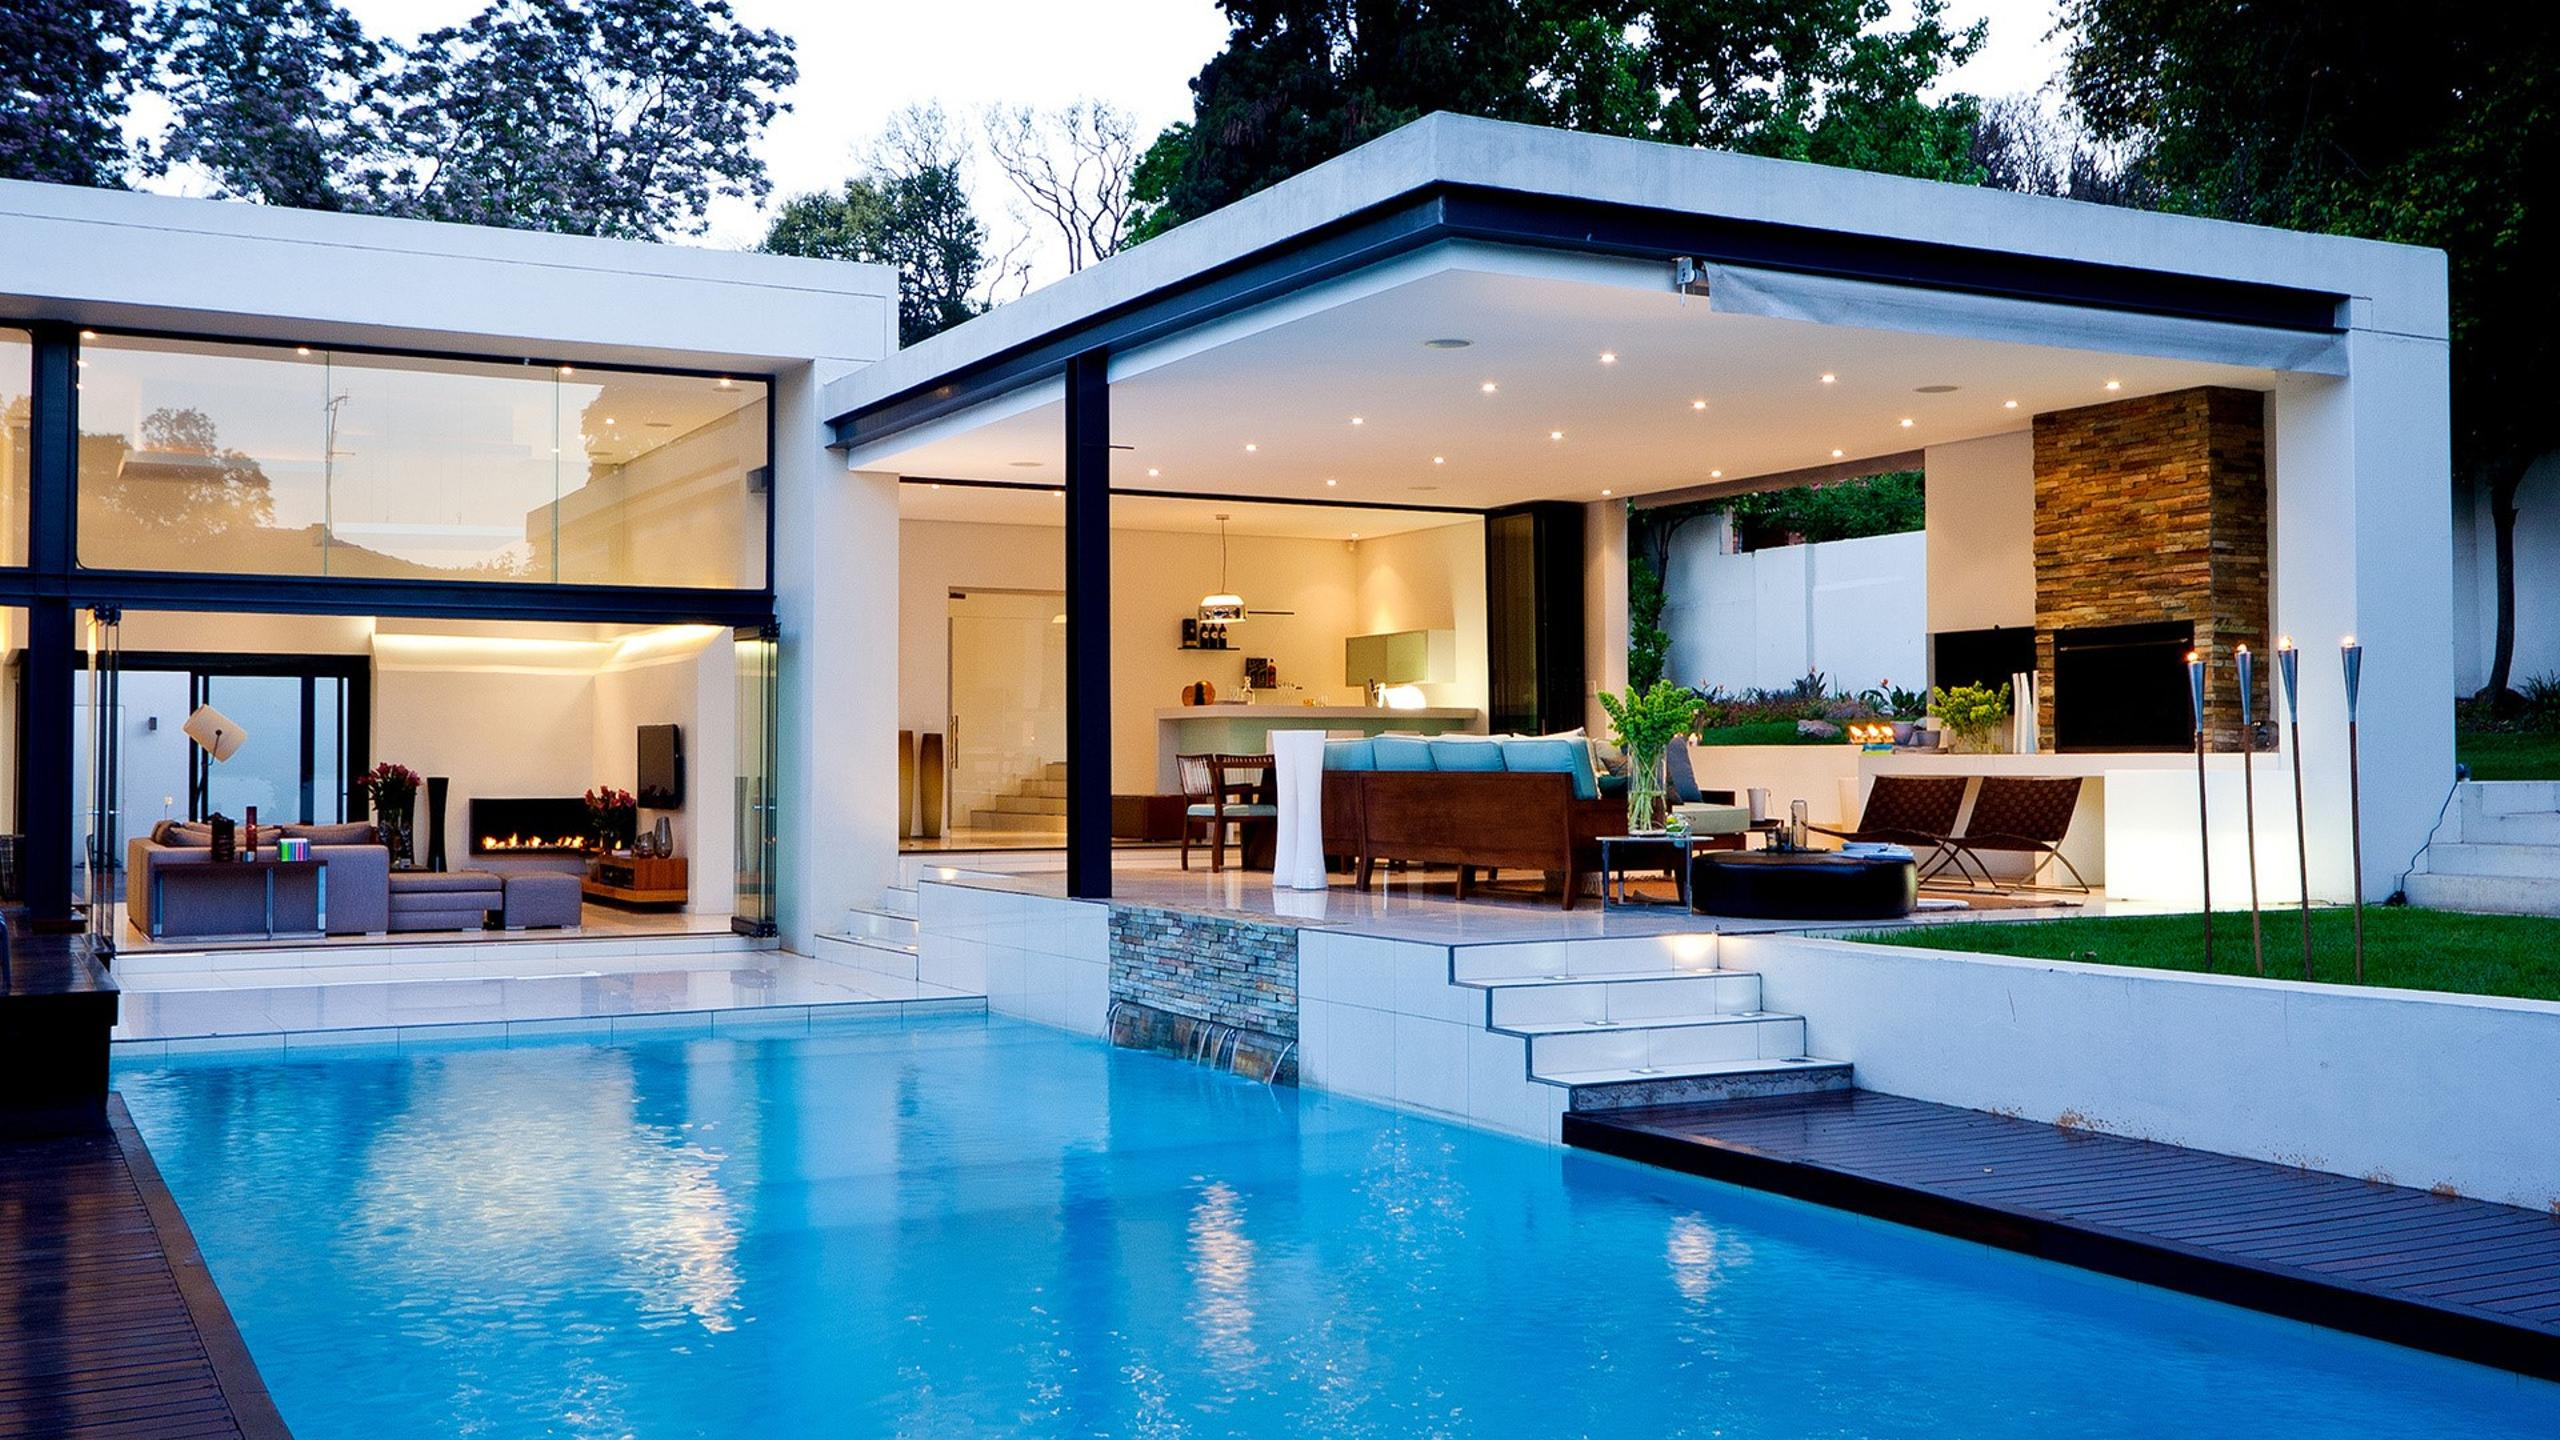 Beautiful white house with swimming pool wallpaper for Beautiful house with swimming pool